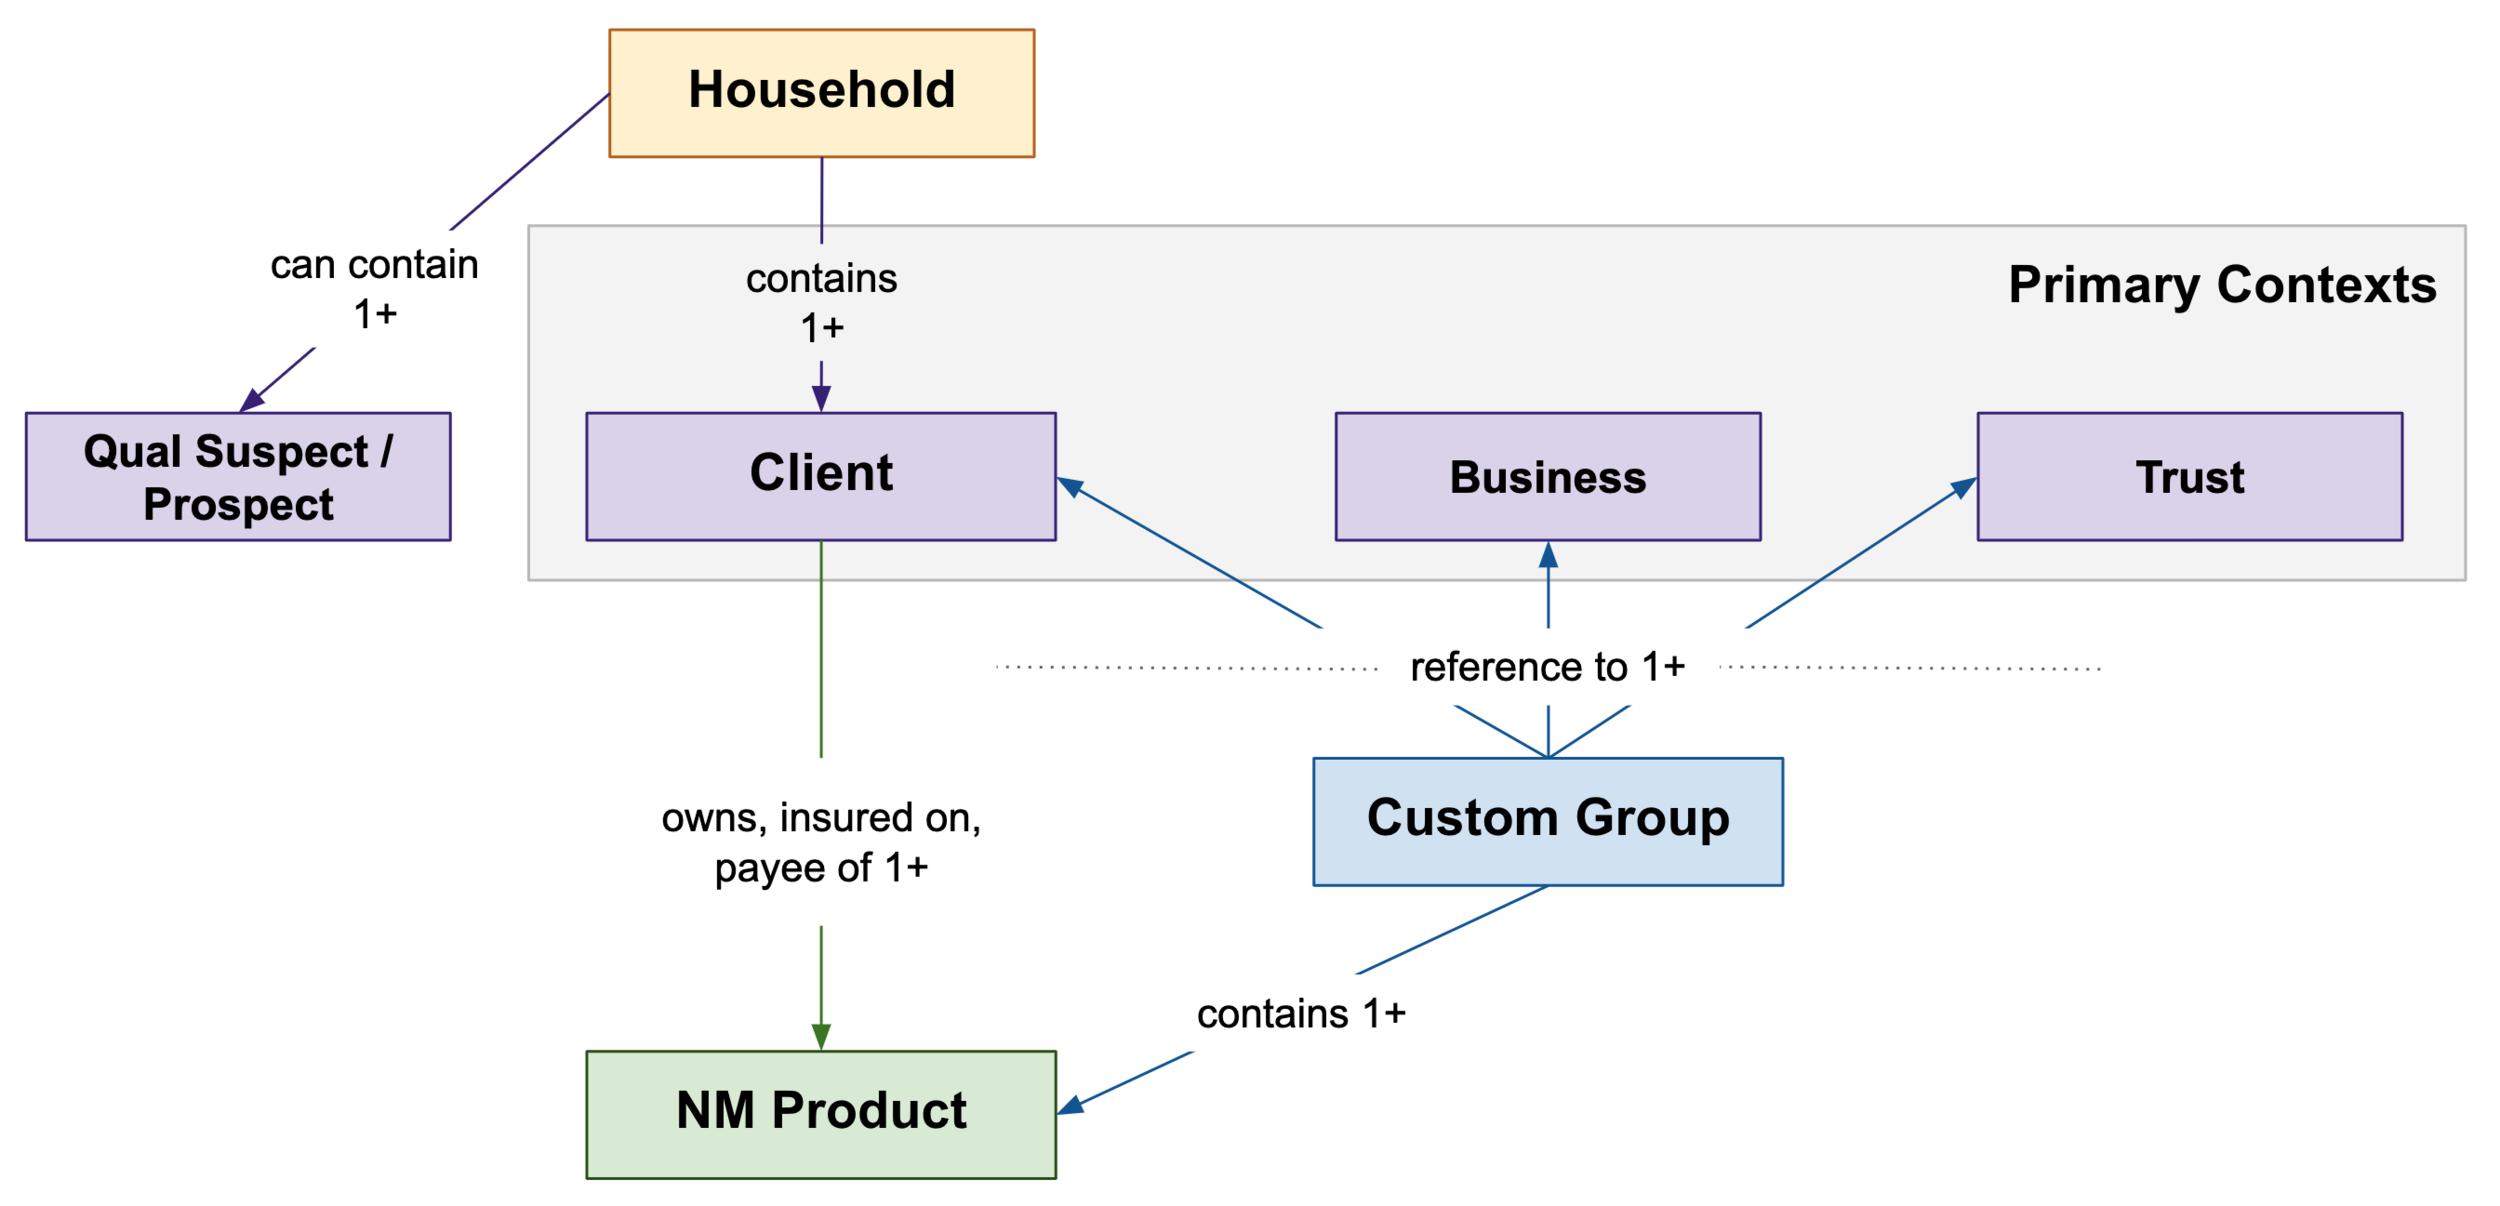 Diagram to illustrate how the different context are connected to insurance products